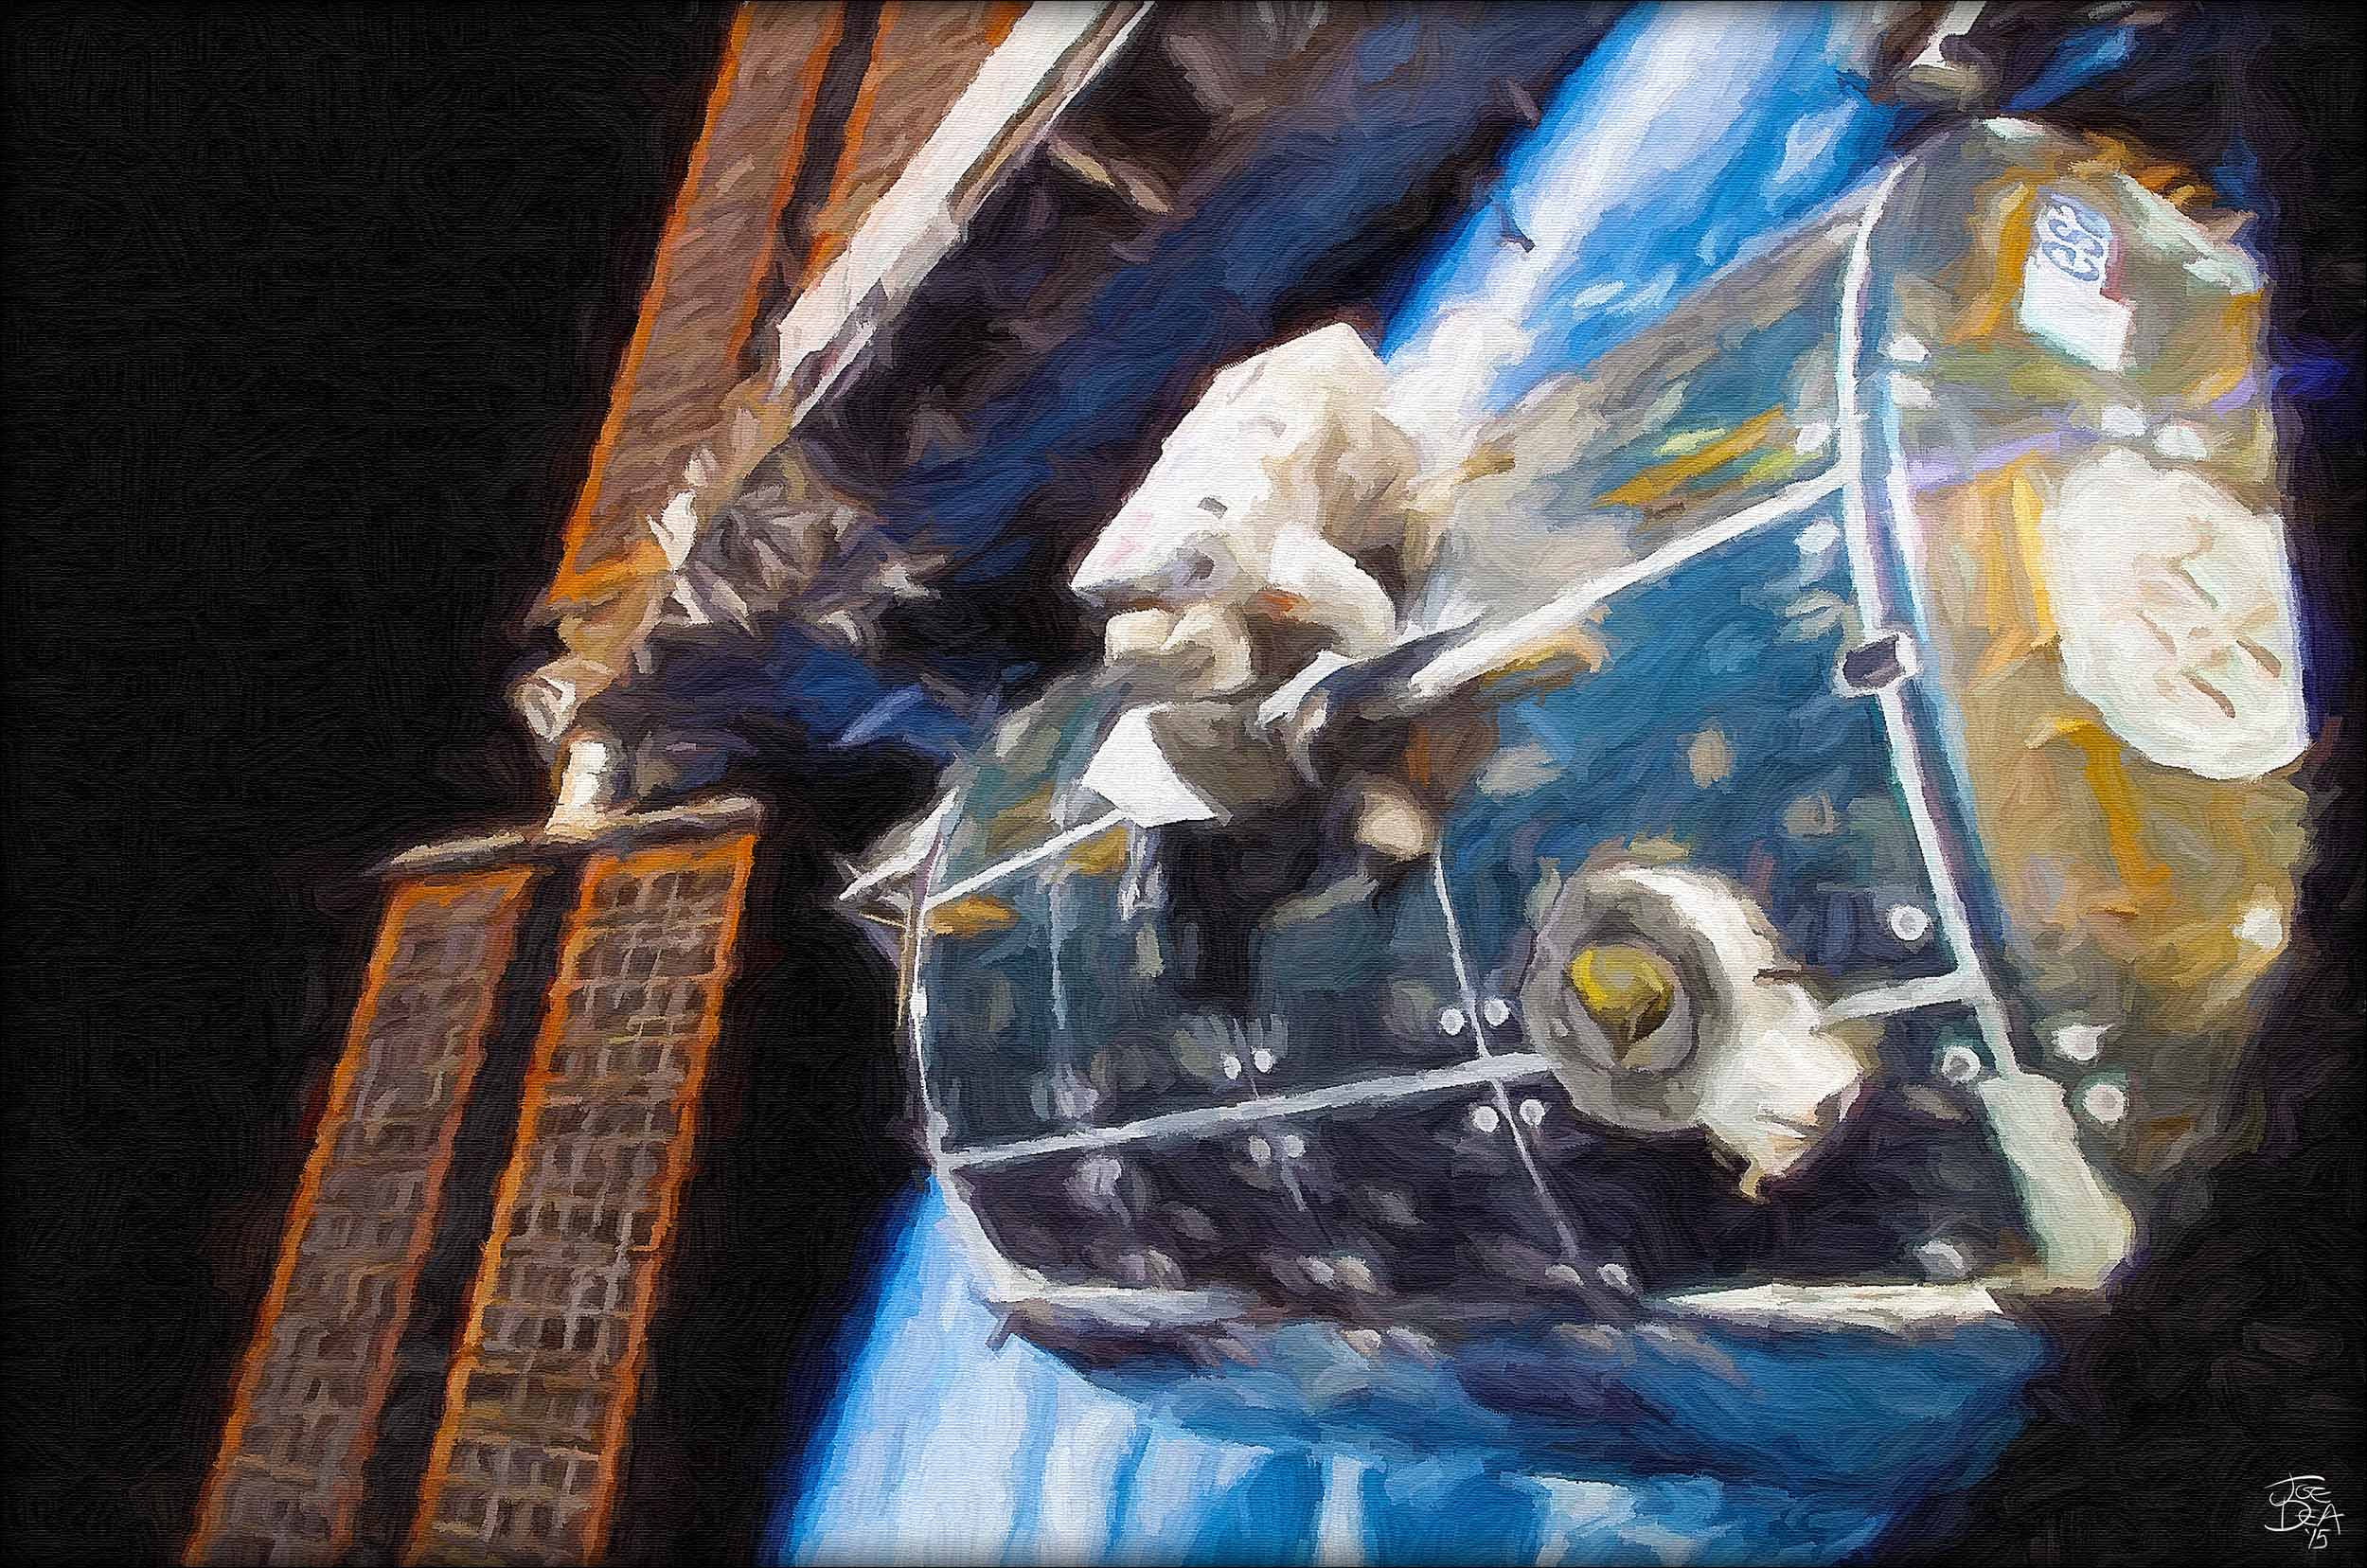 Joe-Dea-ISS-Space-Walk-Painting-LB.jpg